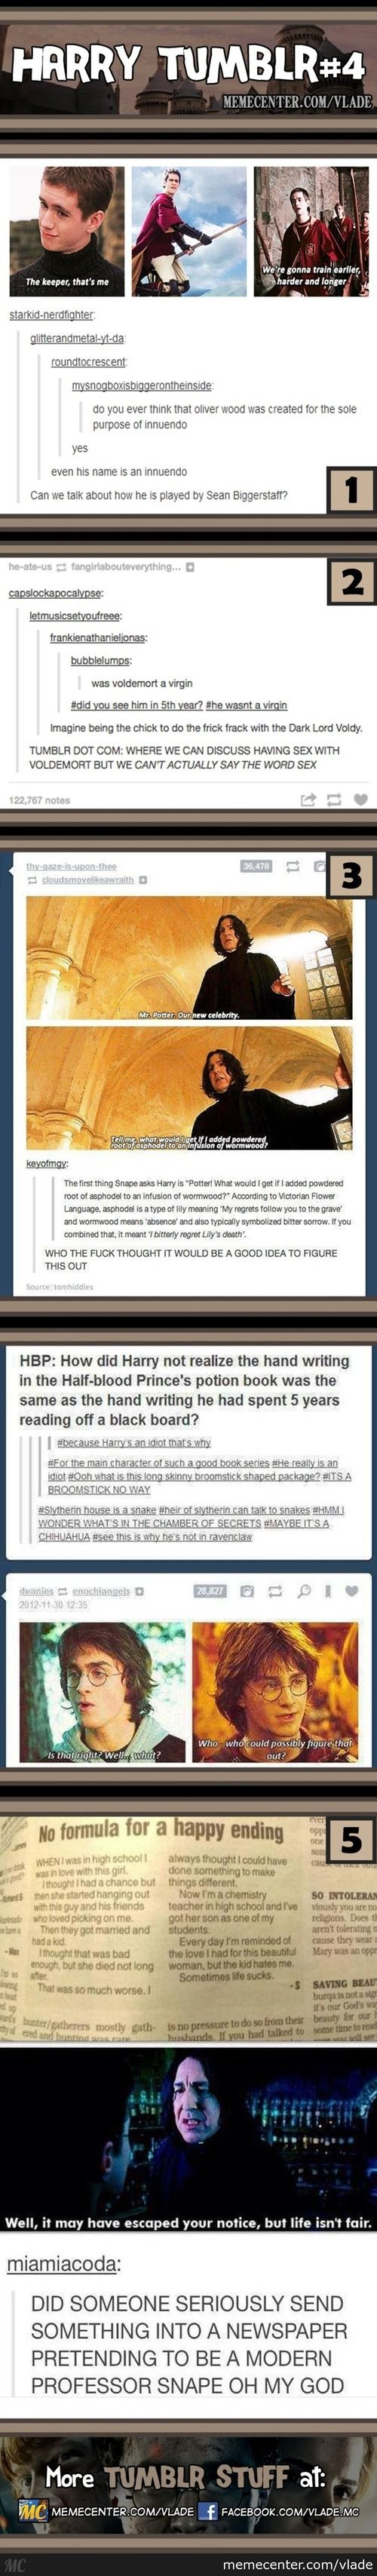 Harry Tumblr # Memes. Best Collection of Funny Harry Tumblr # Pictures